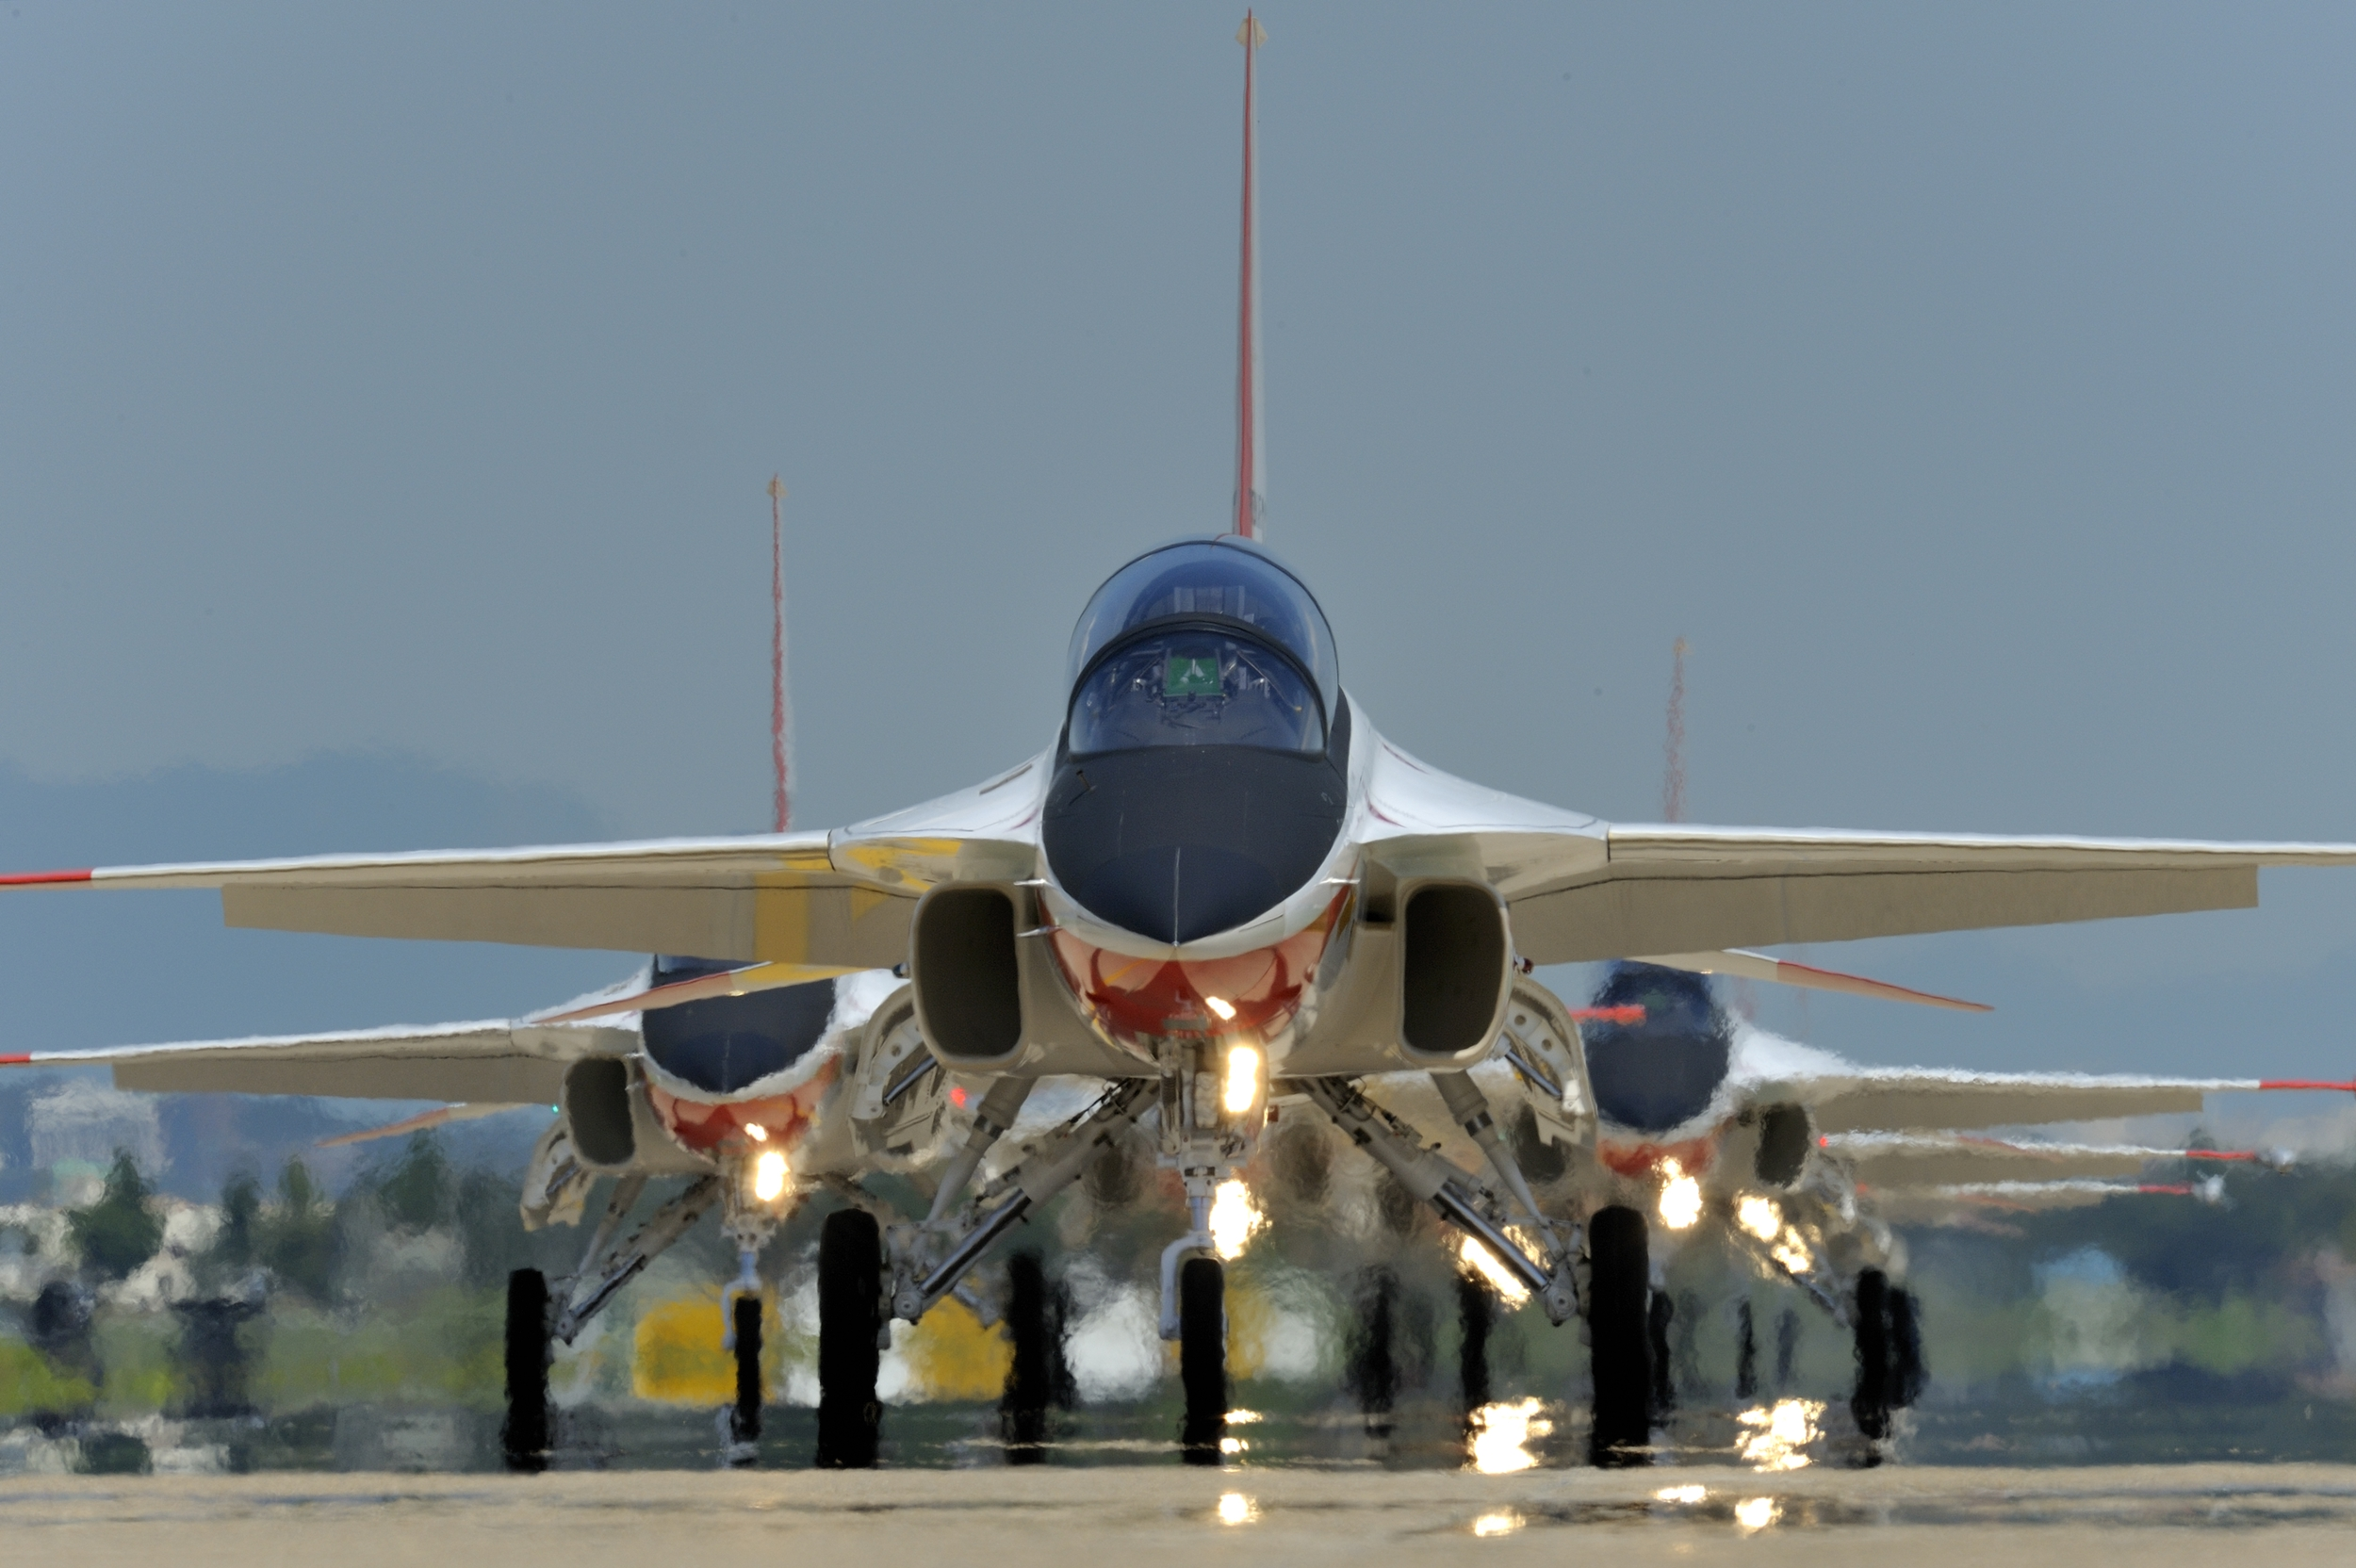 https://upload.wikimedia.org/wikipedia/commons/a/a5/T-50_Golden_Eagle_Lining_up.jpg